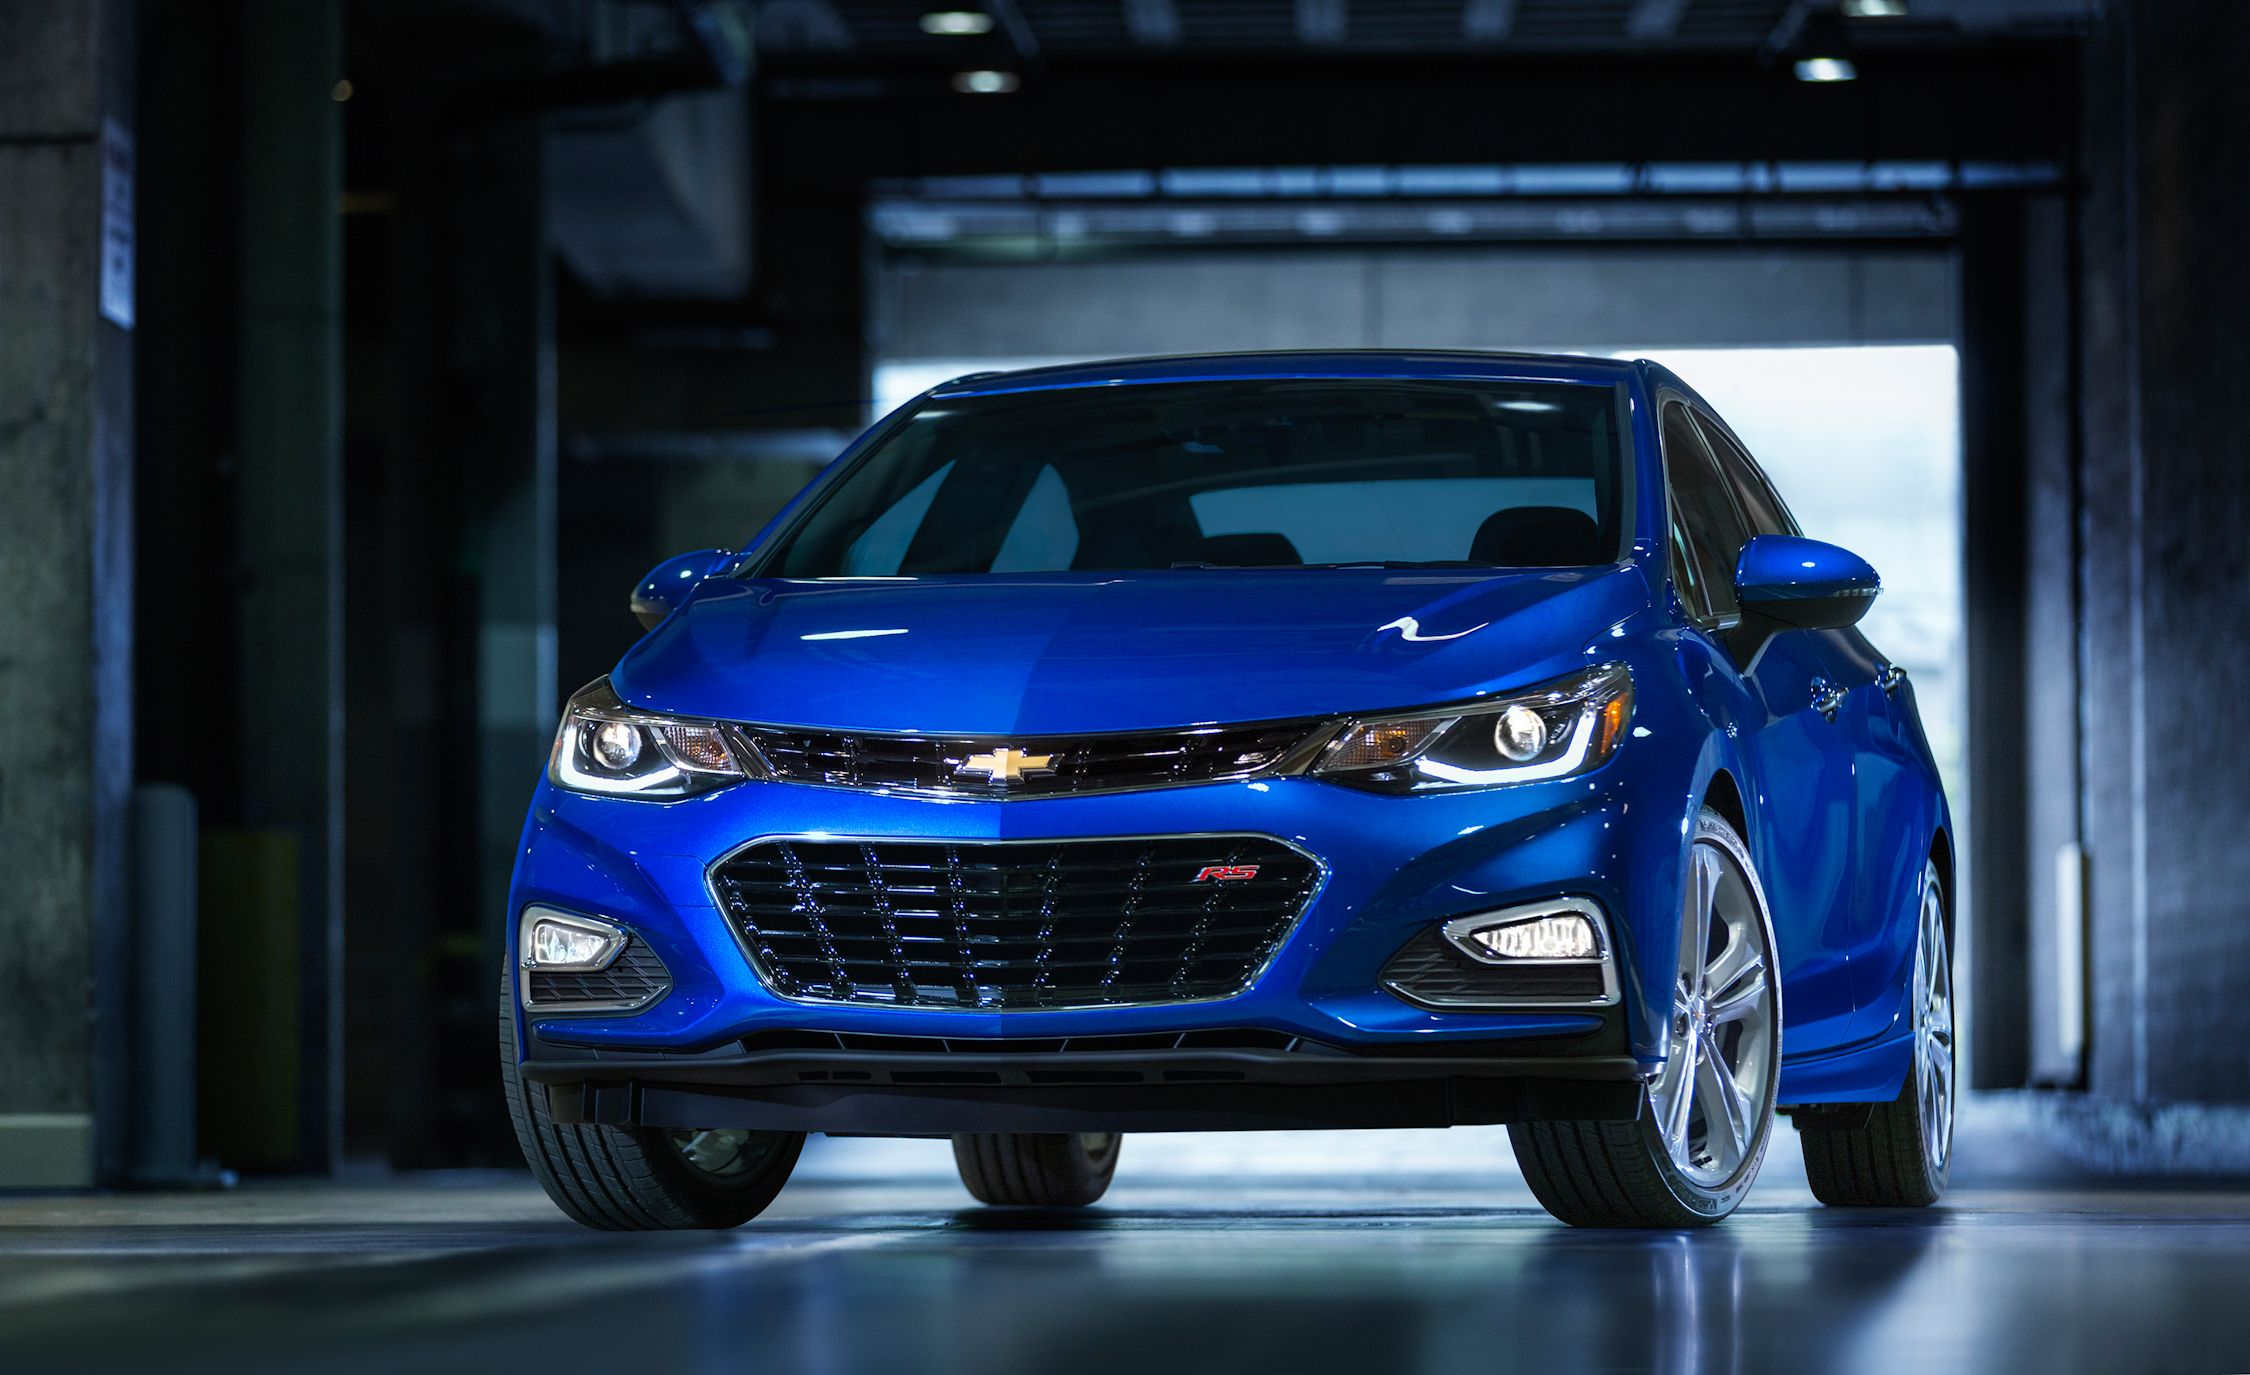 2016 chevrolet cruze pictures   photo gallery   car and driver